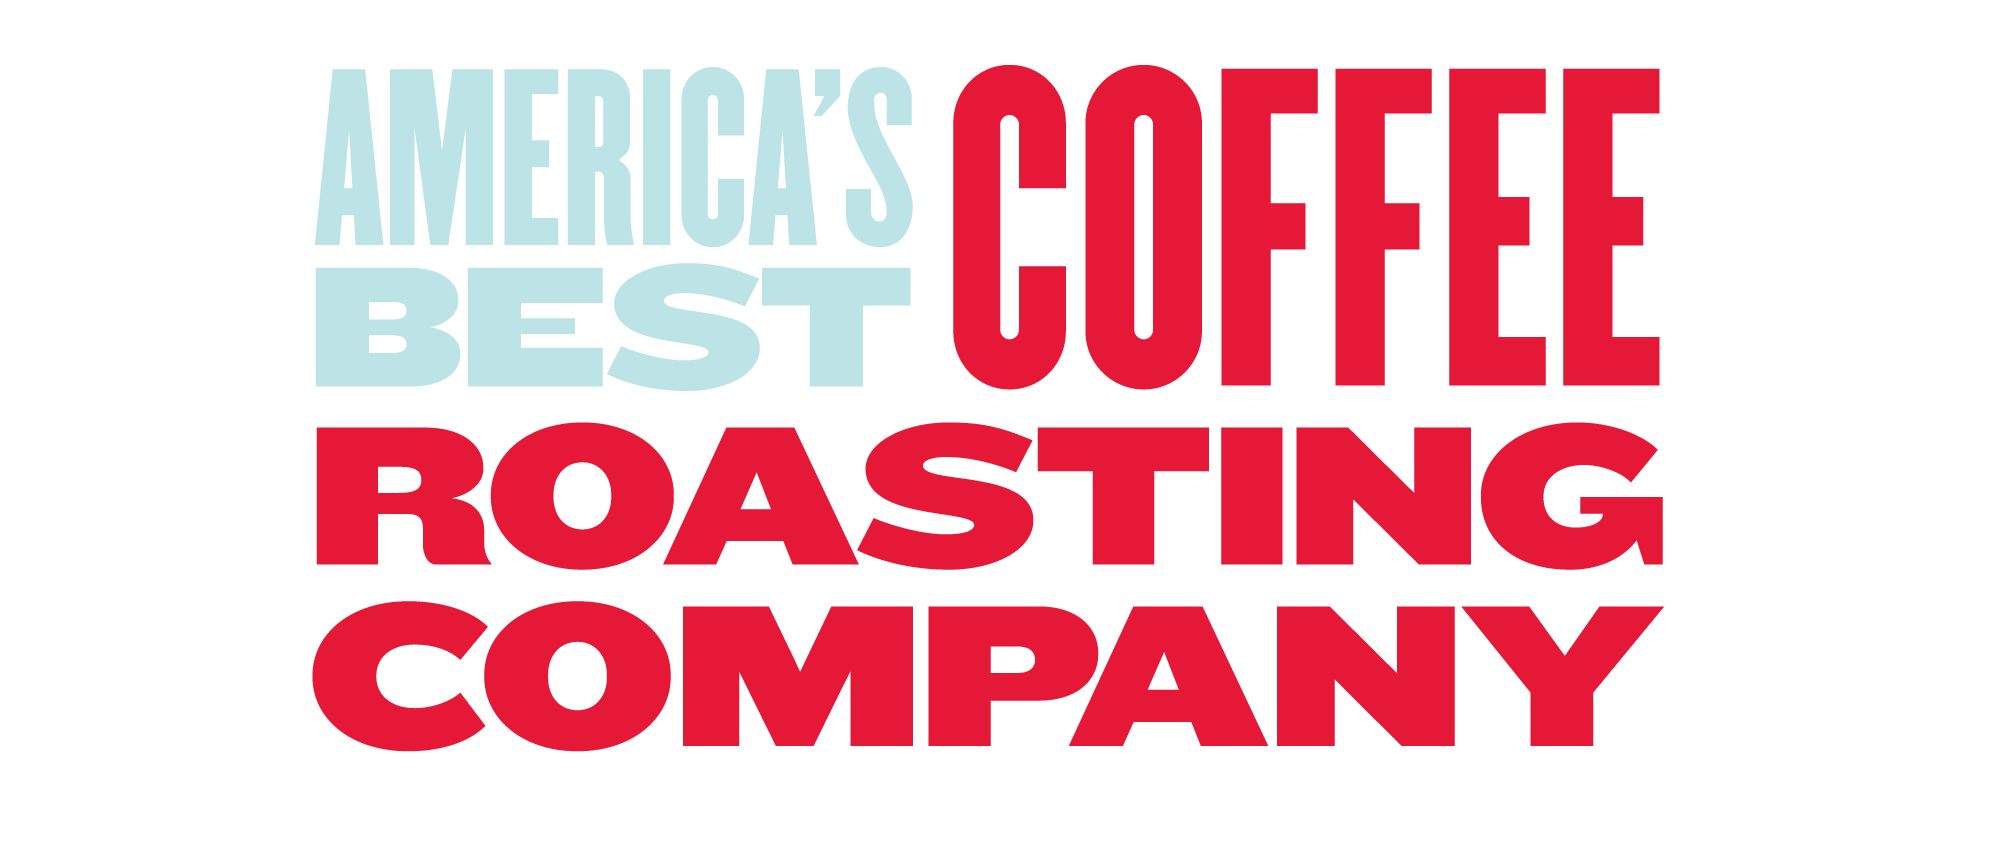 crowdspring case study - america's best coffee package graphics design